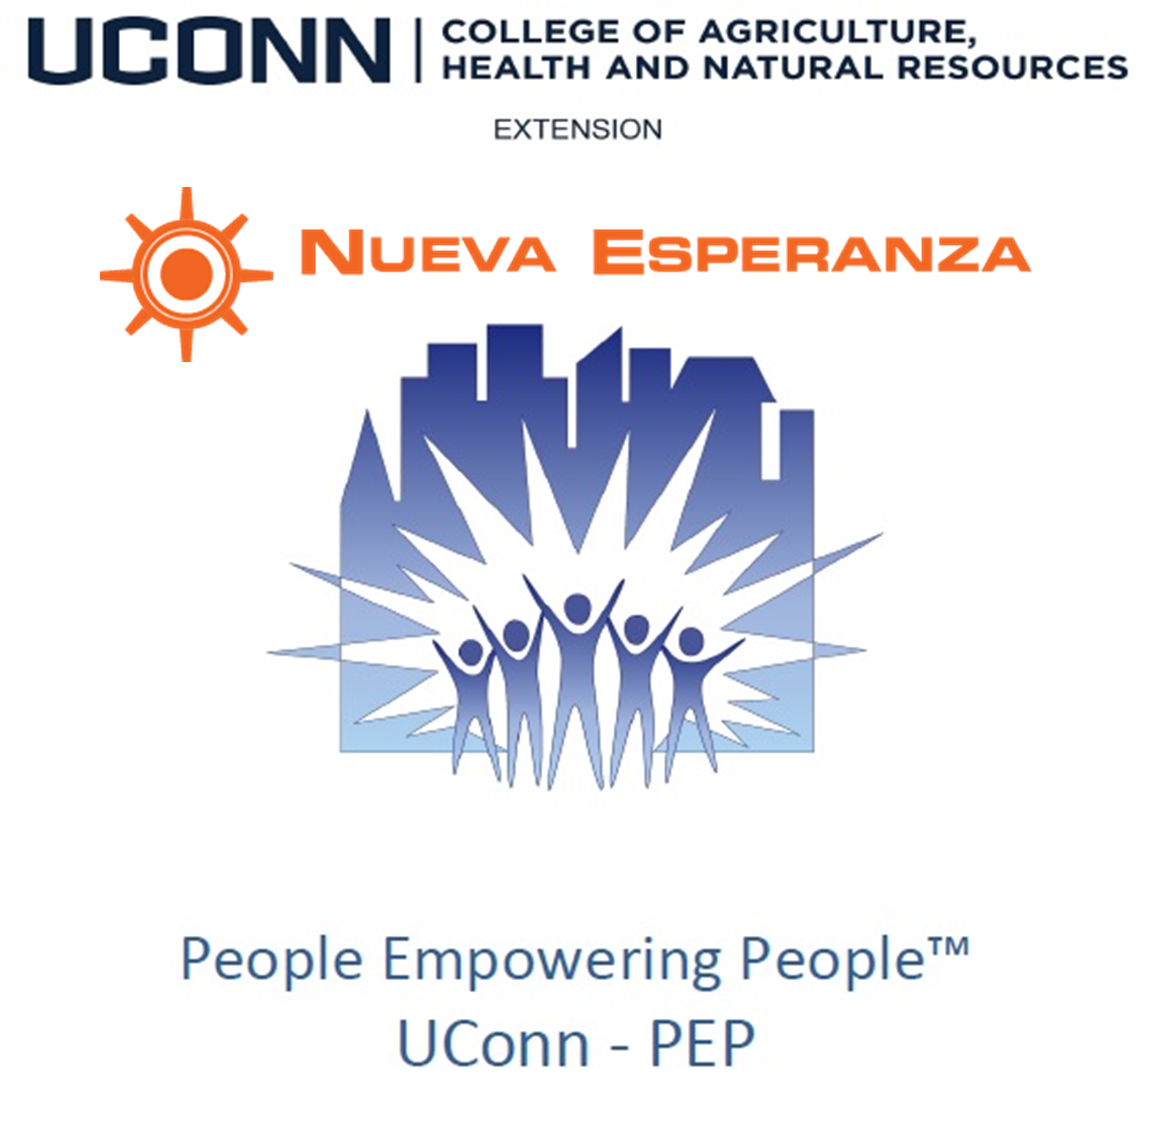 UCONN People Empowering People Program Coming to Western